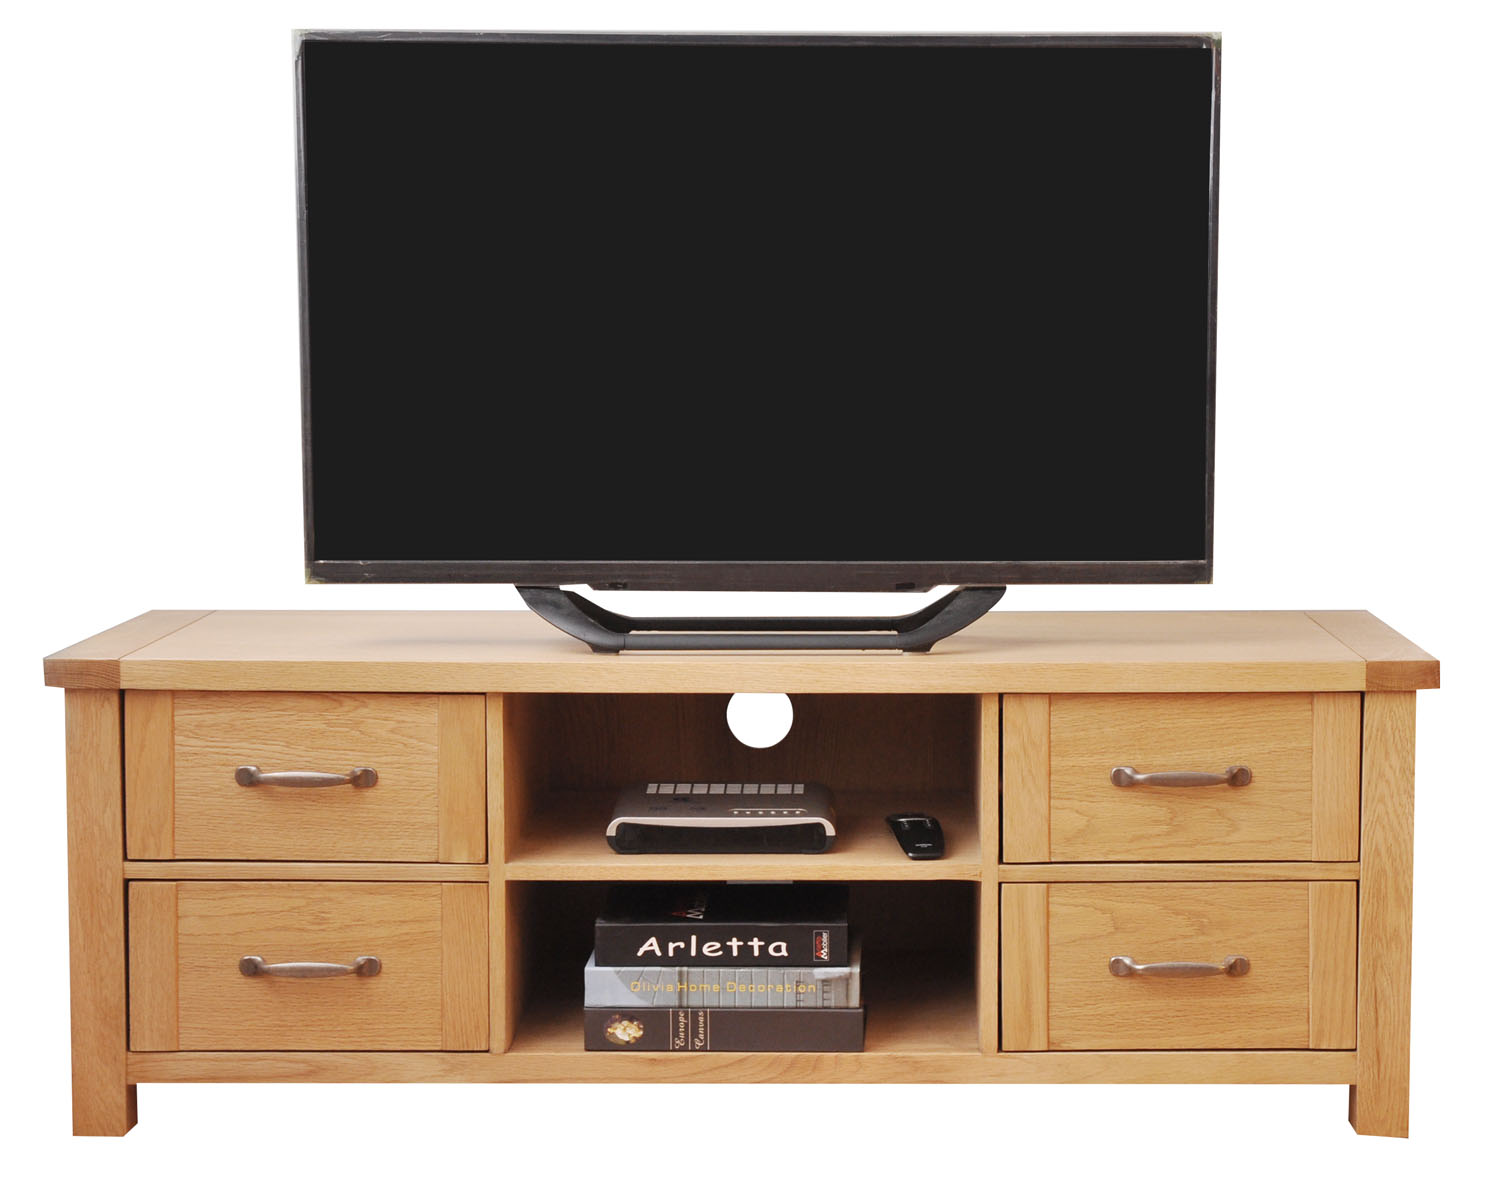 Large Oak TV Stand Wooden Media Cabinet Entertainment